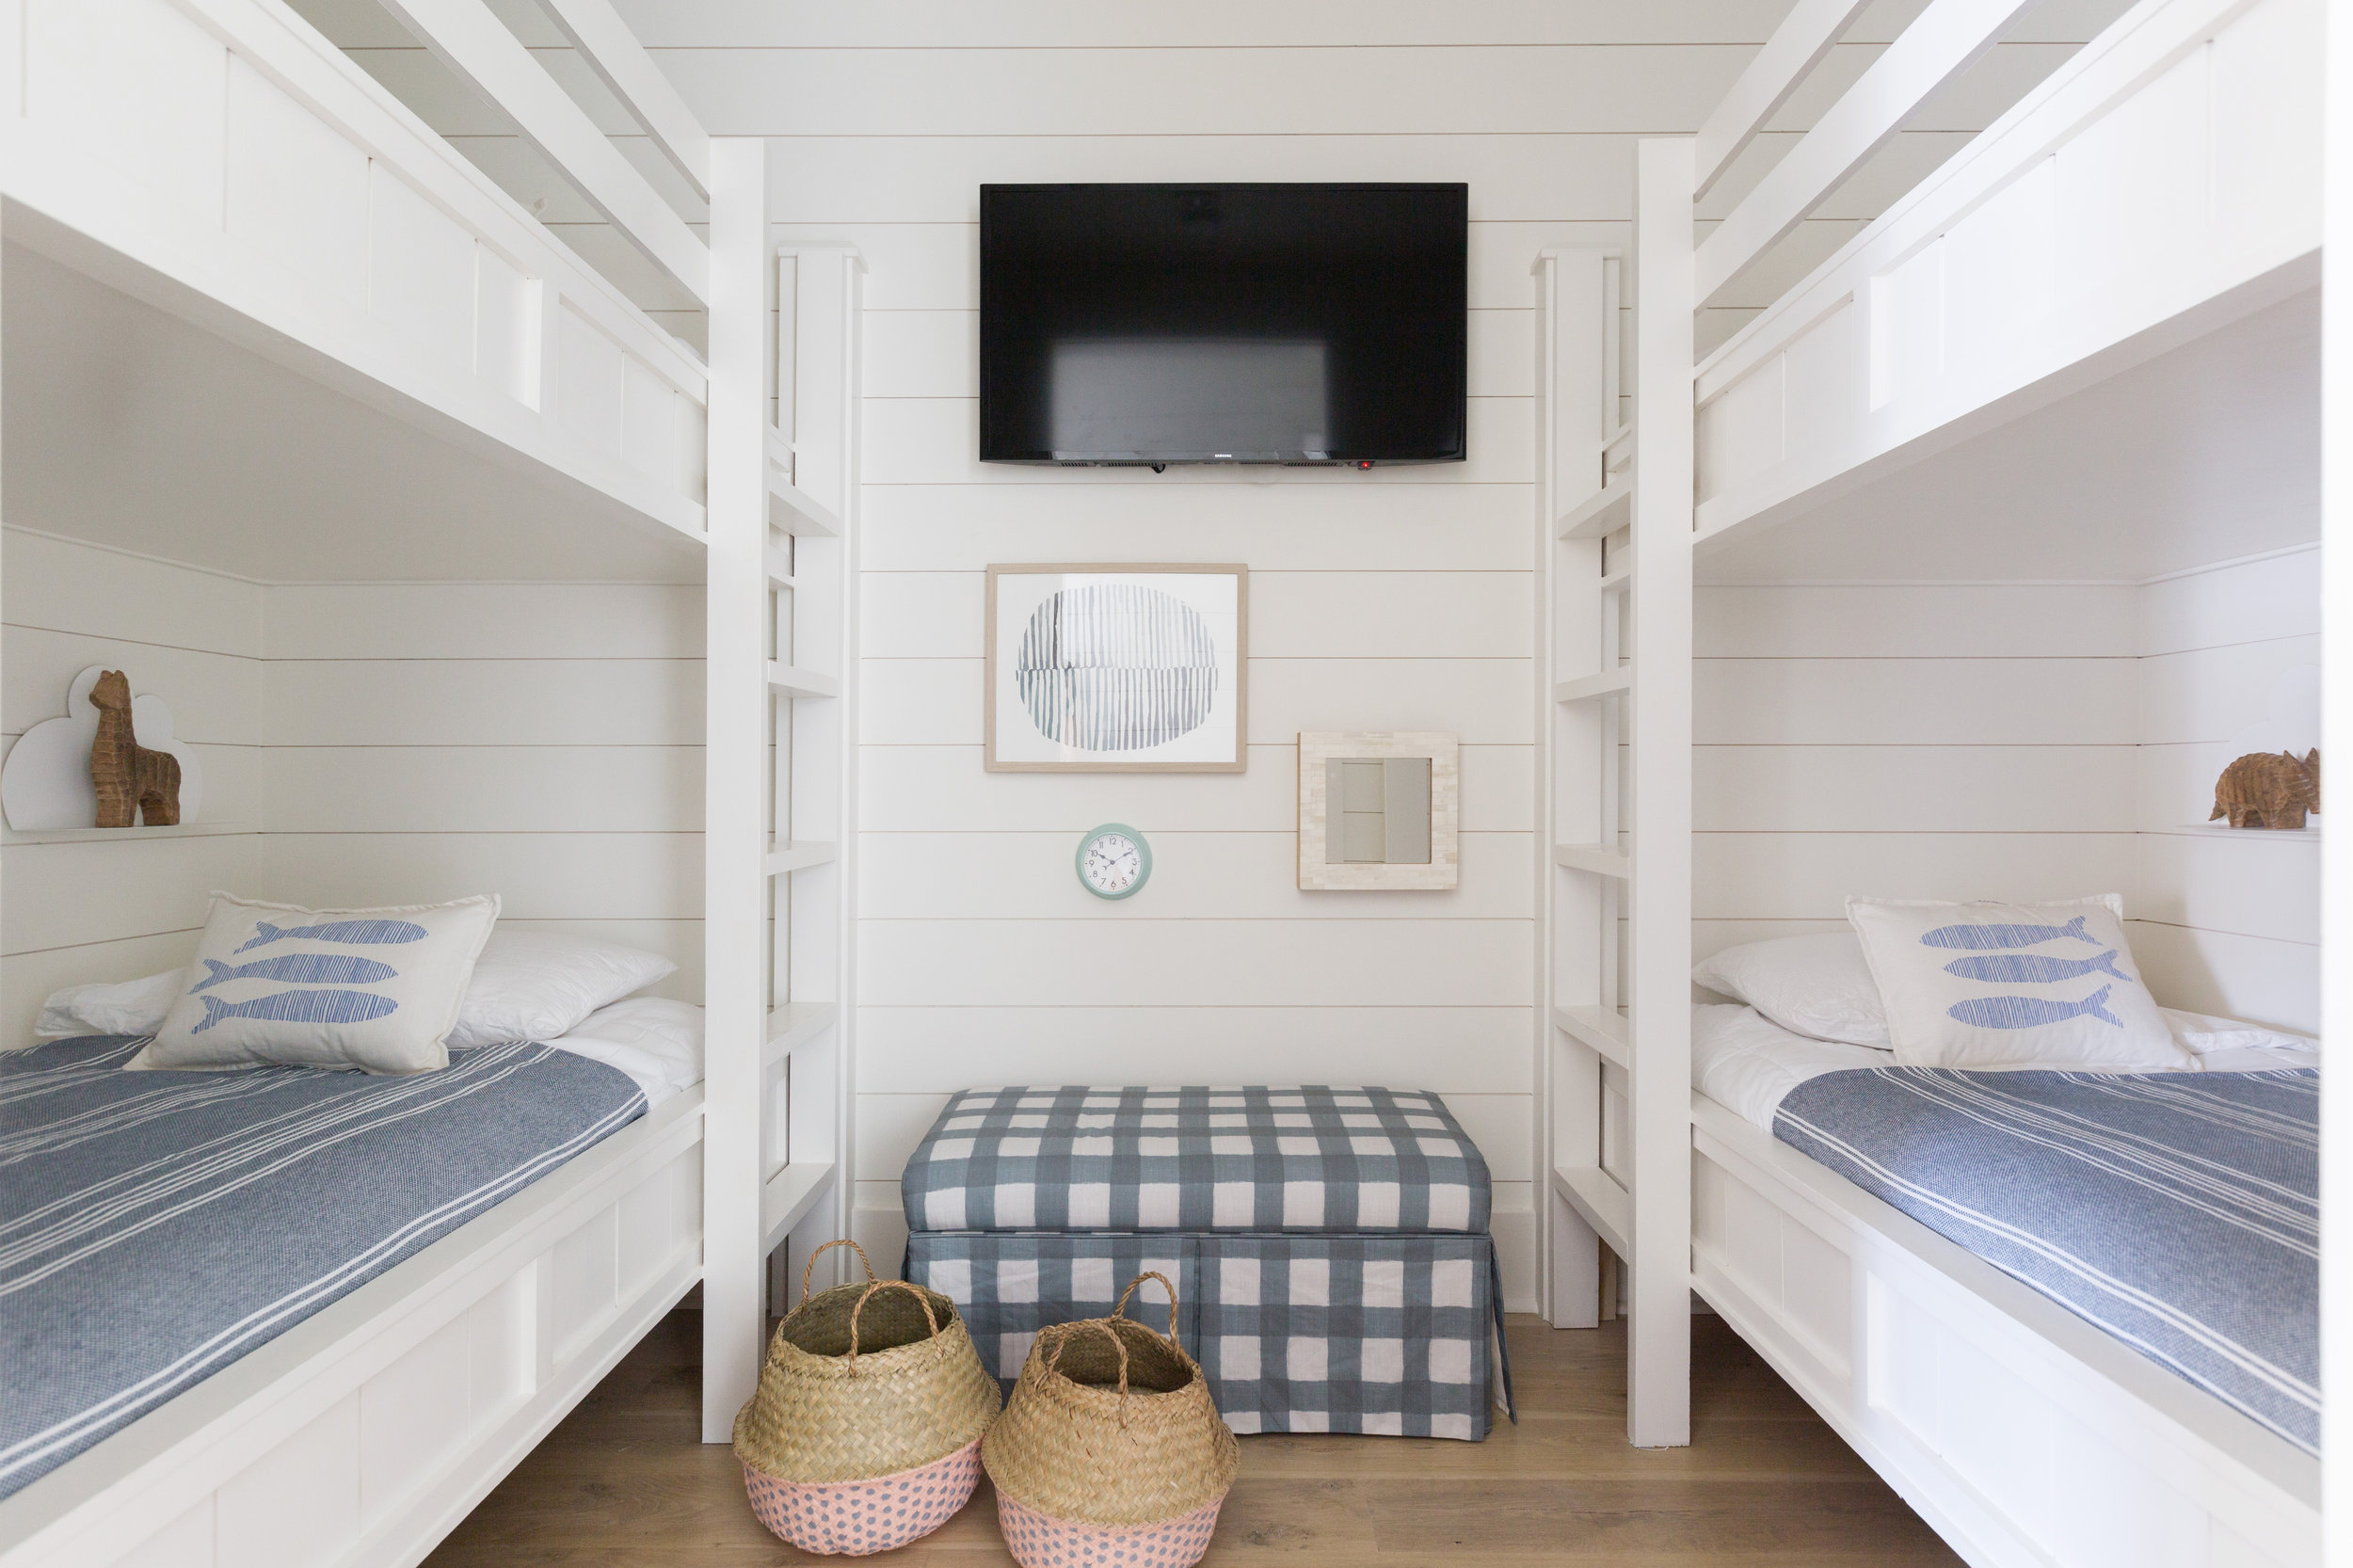 Love this bunk room in this beach house! Shiplap walls are beautiful too kellyelko.com #kidsrooms #bedrooms #bunkroom